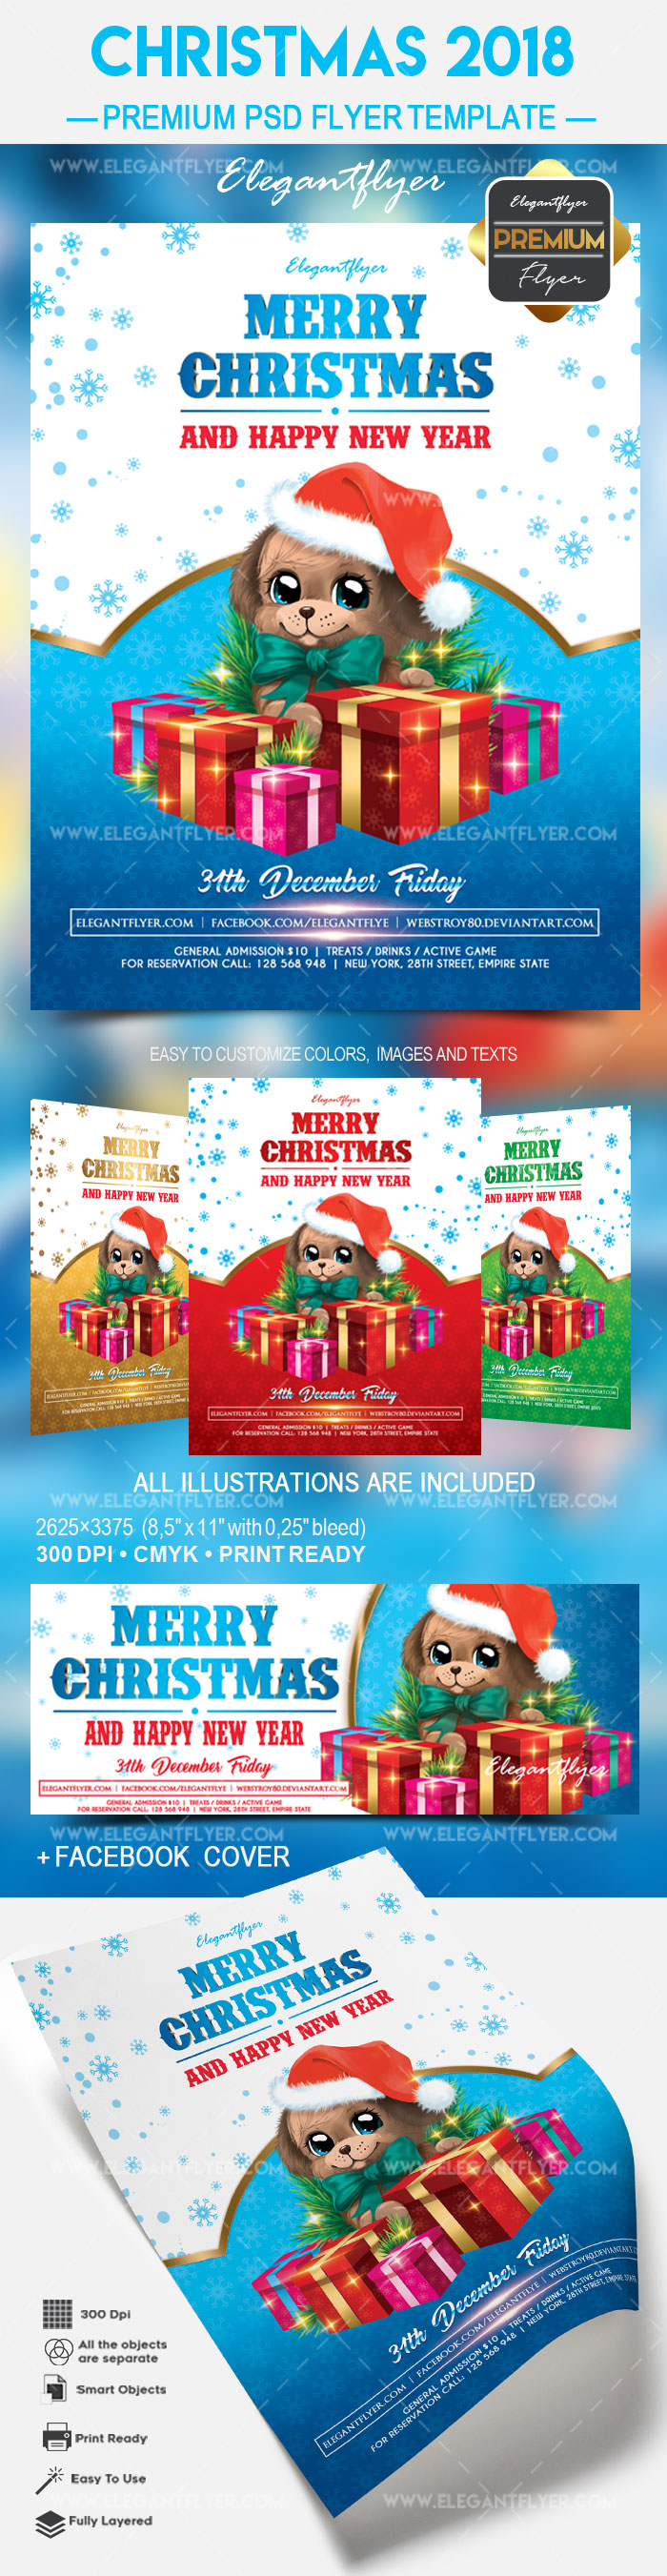 Dog Christmas Gifts PSD Template